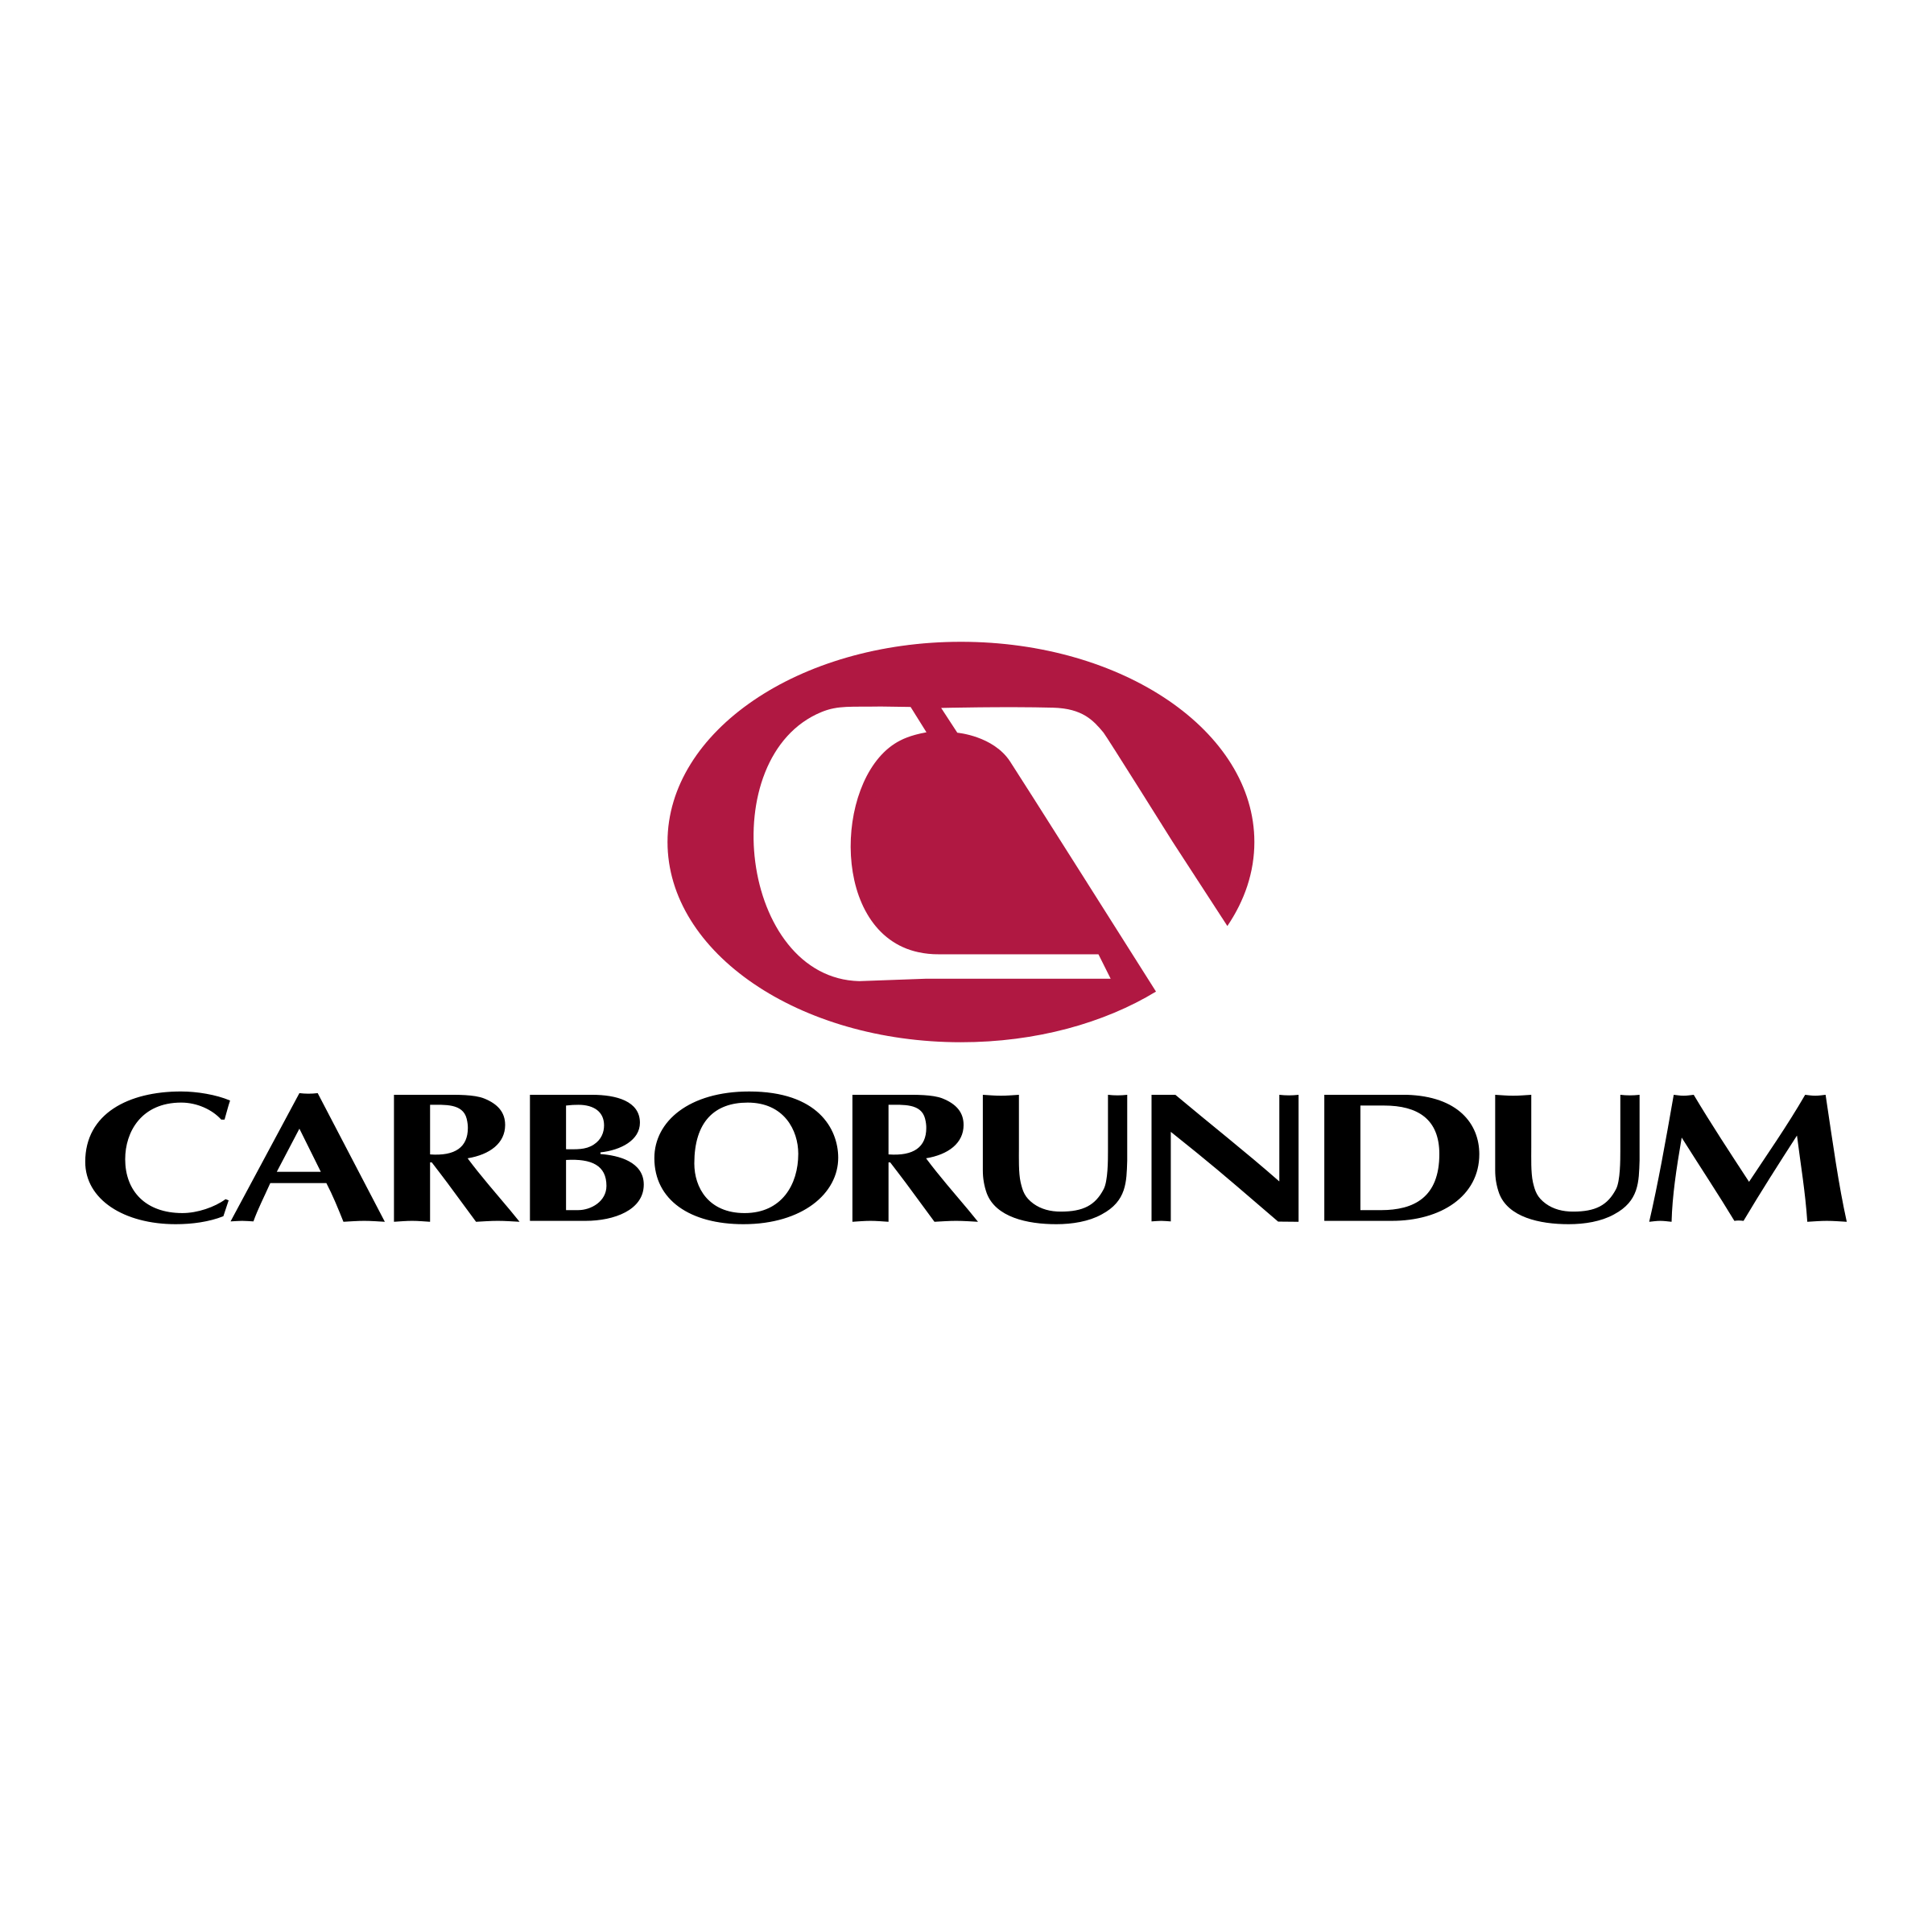 Carborundum 29358  - Resin Cloth Regular Sanding Sheets JCF0852 Aluminum Oxide 150 Grit (9 Inch x 11 Inch) 05539529358